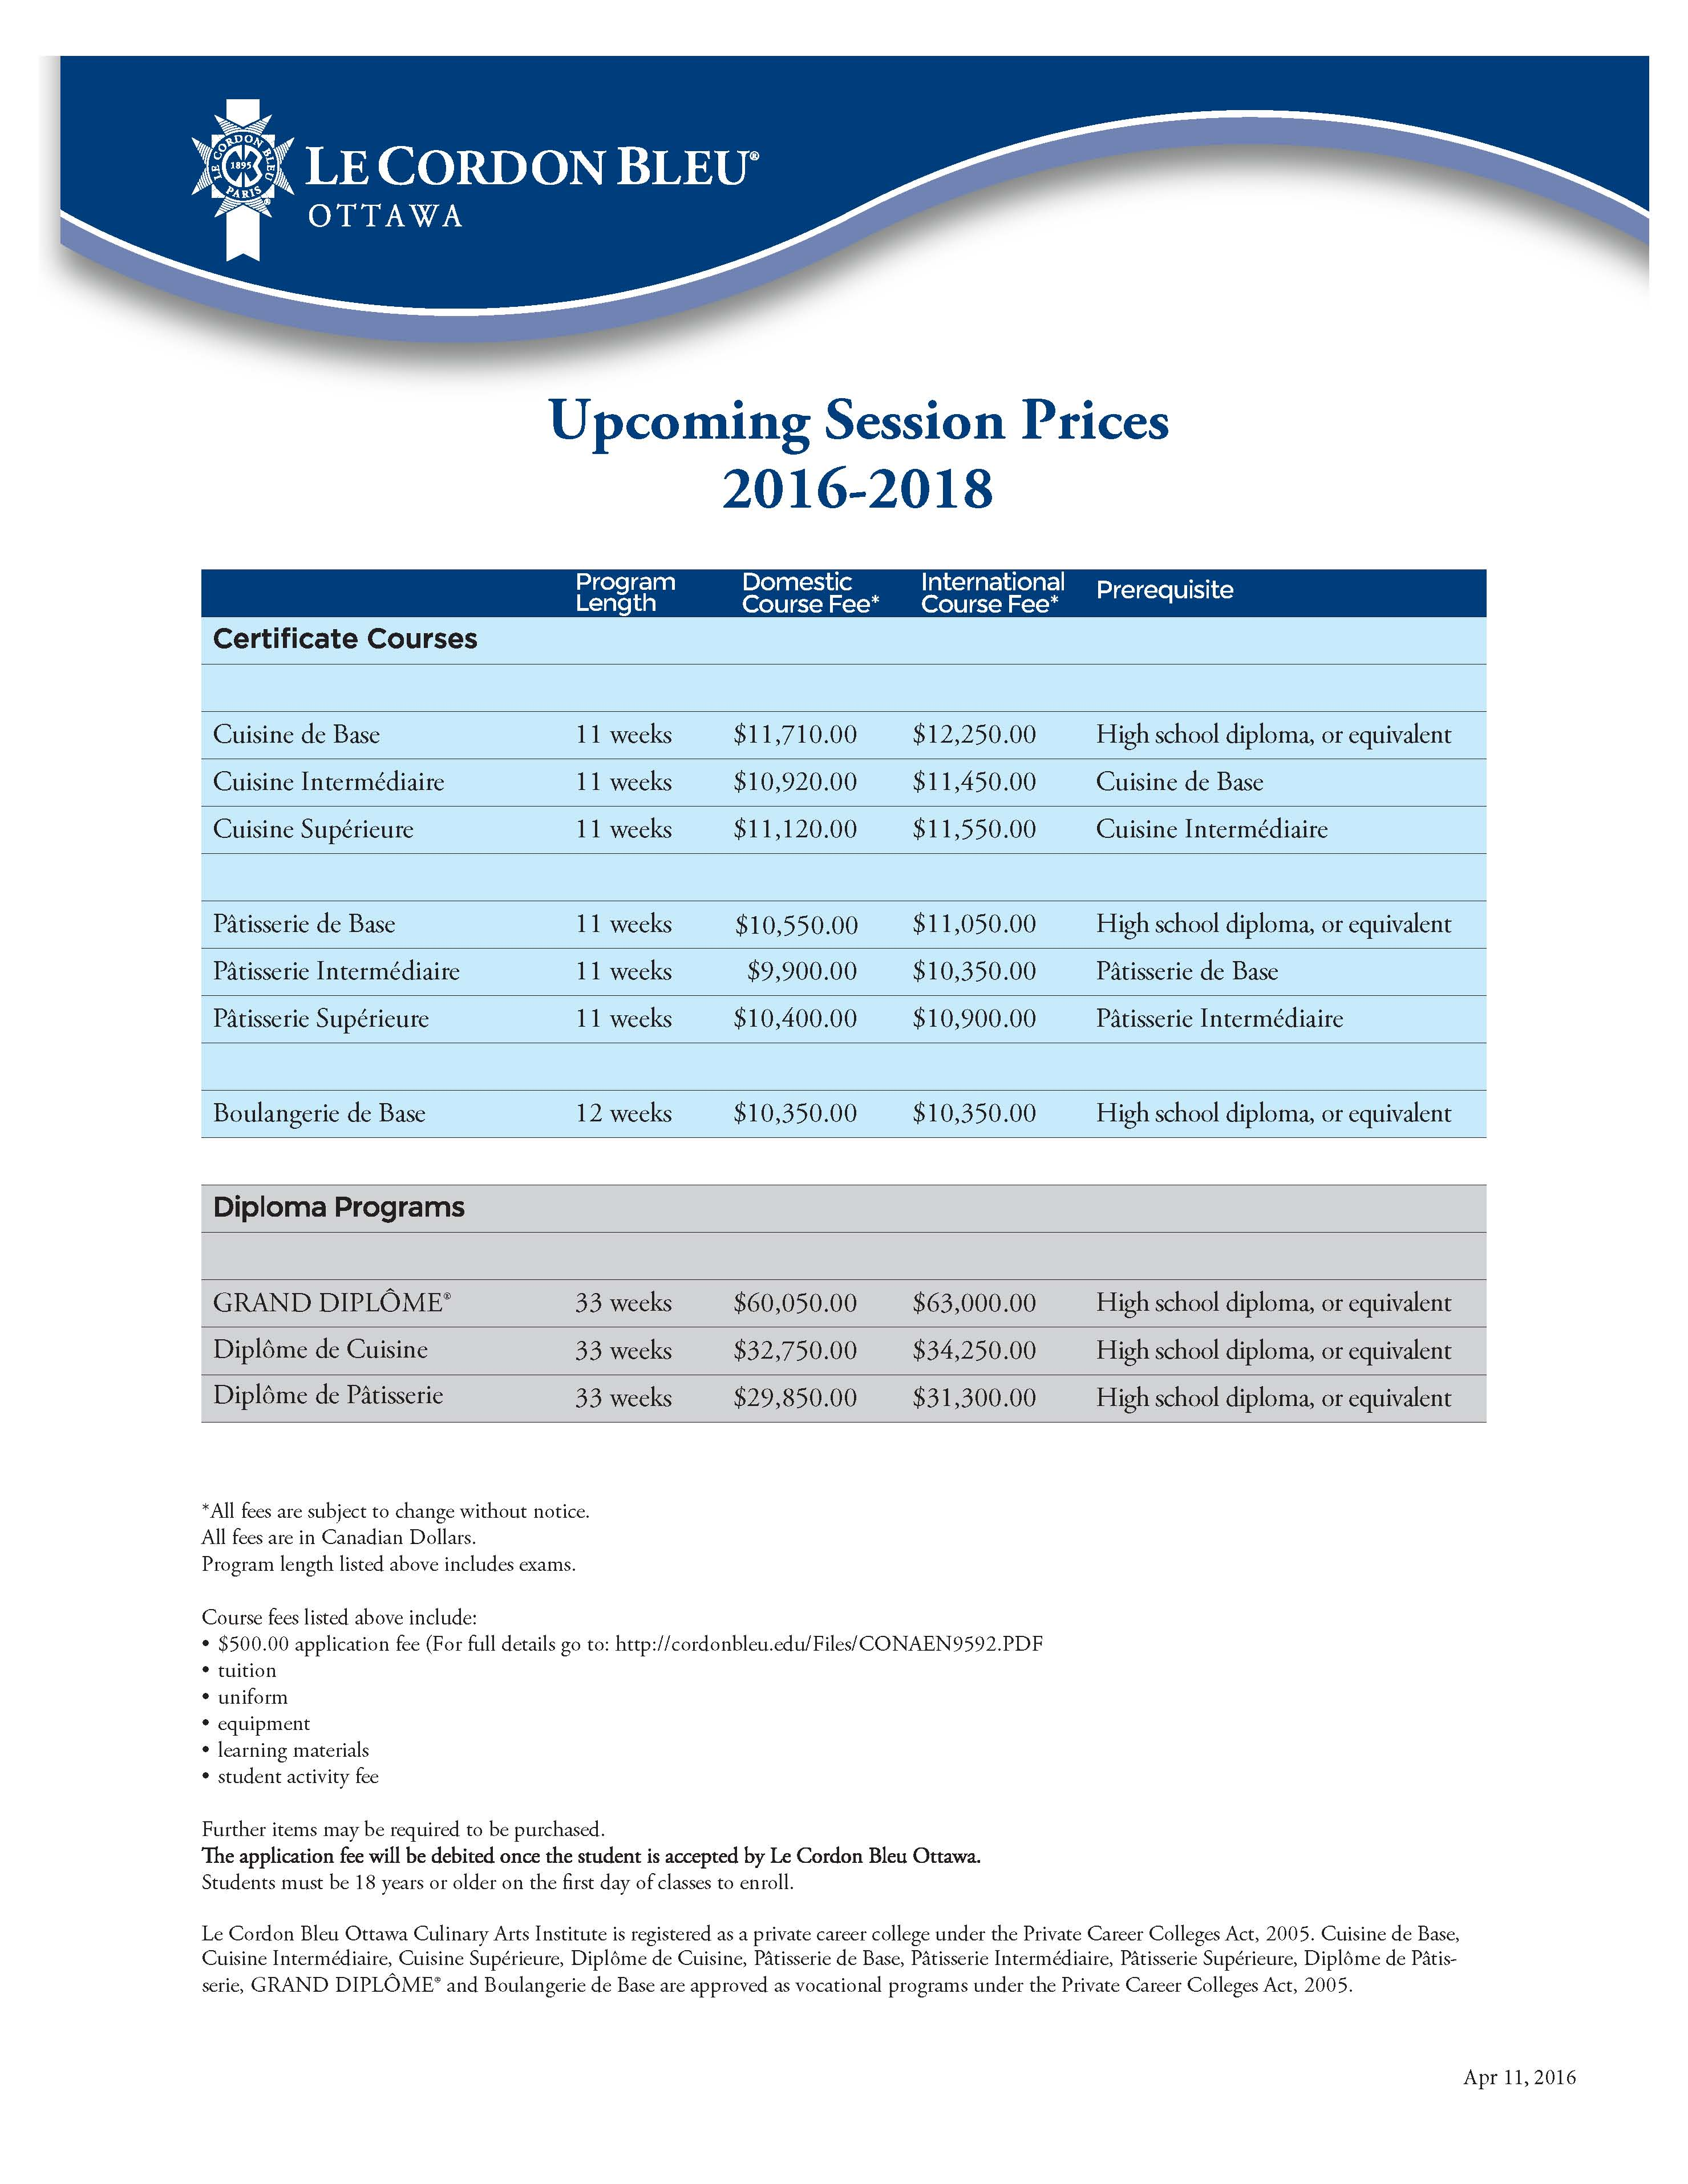 Ottawa_2016-2018 session date and price_페이지_2.jpg